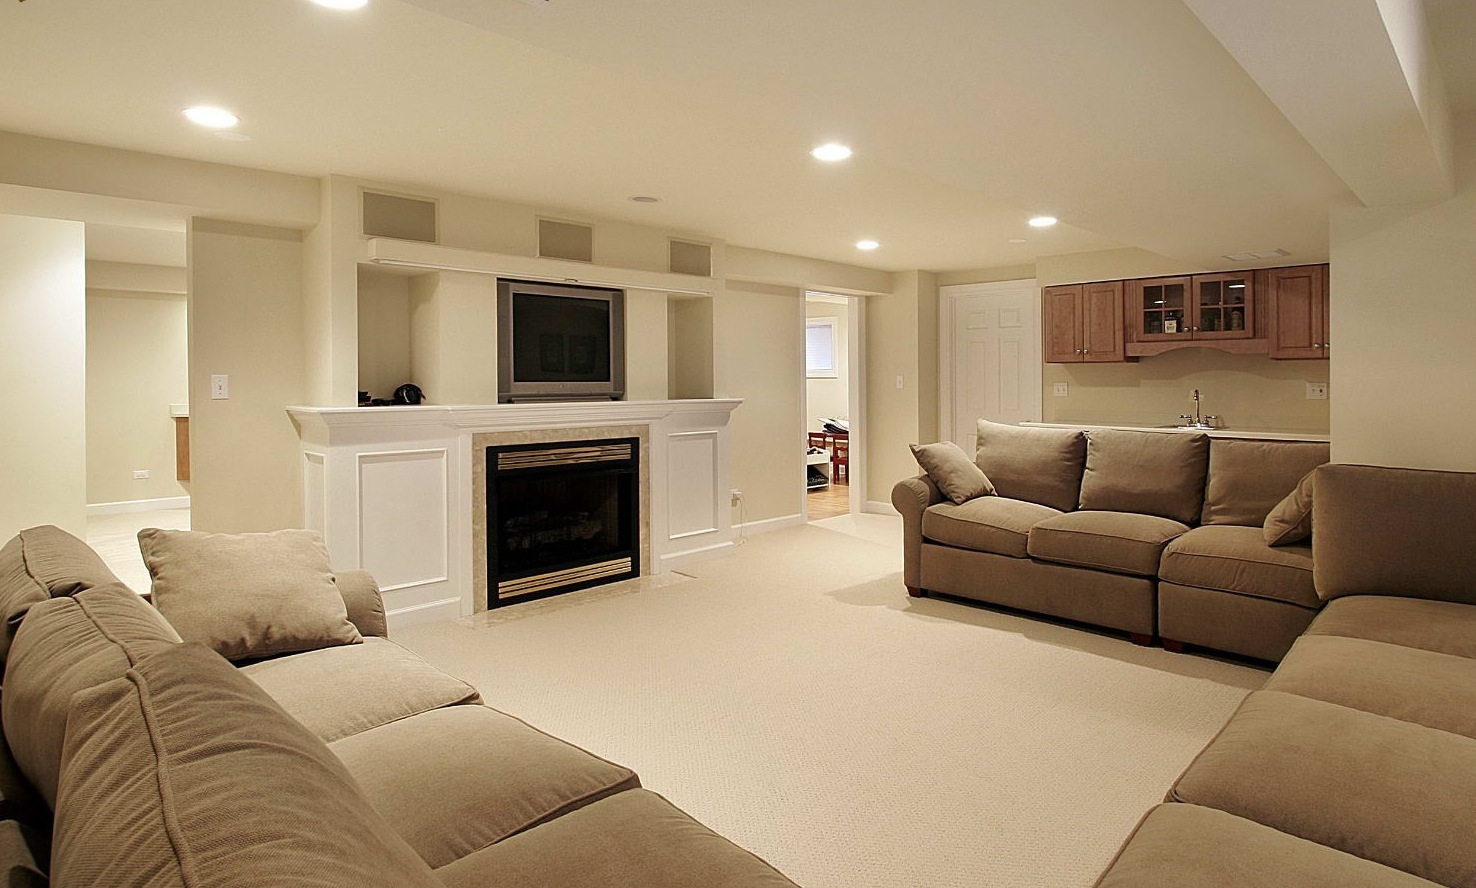 Living Room Renovation Ideas Amazing 30 Basement Remodeling Ideas & Inspiration Inspiration Design